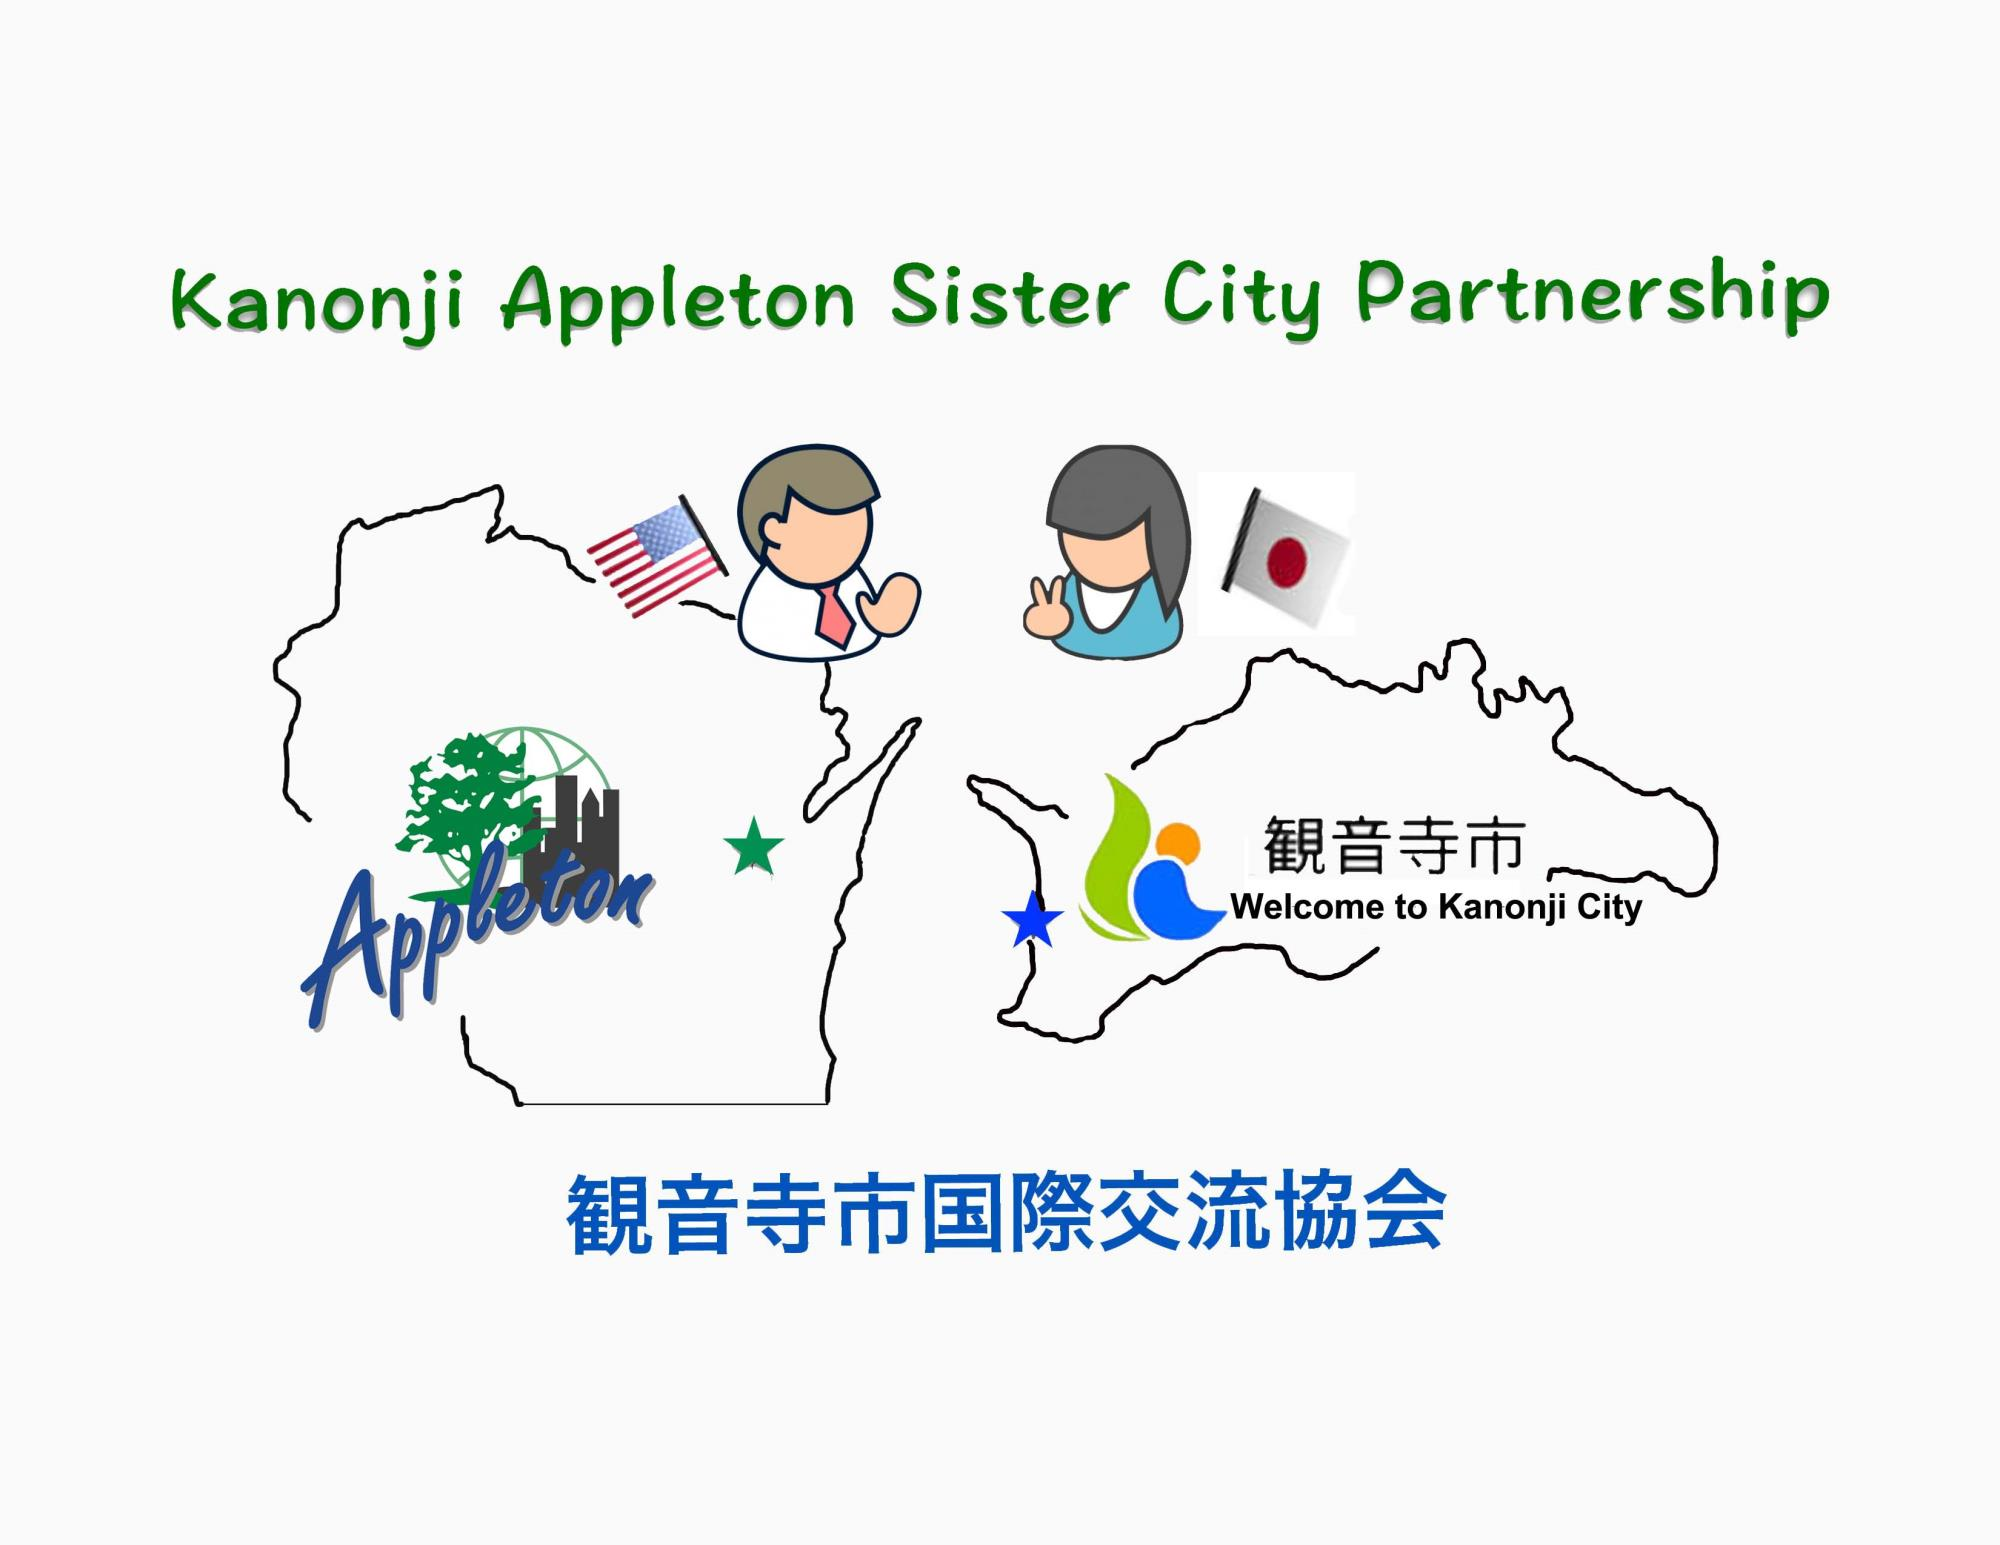 Kanonji partnerhsip photo